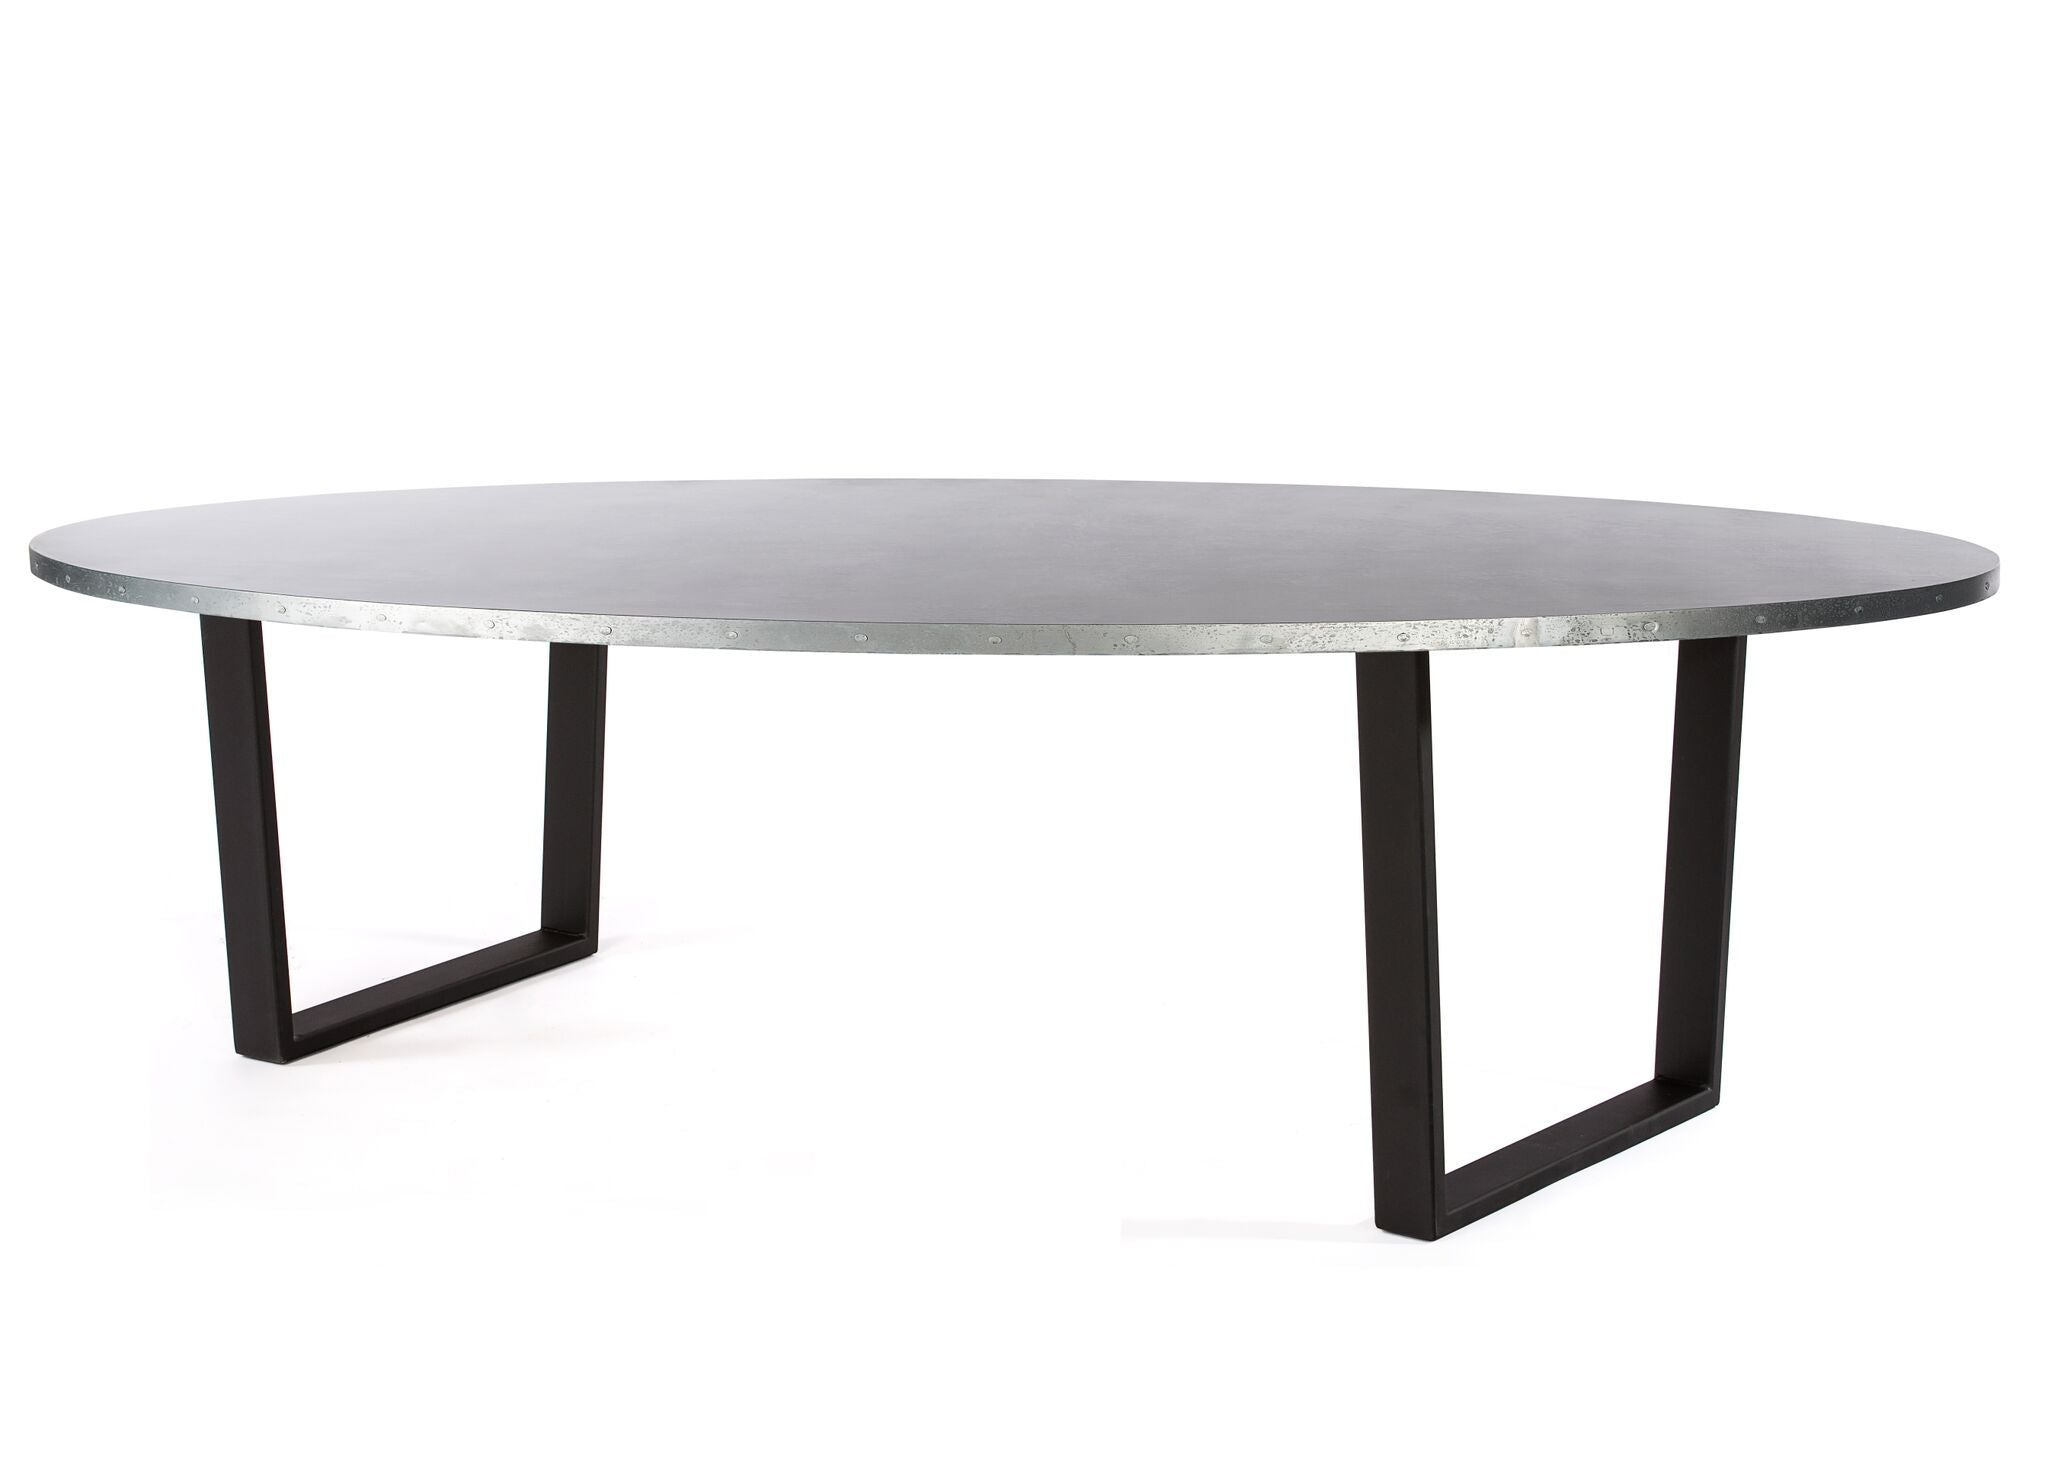 "Zinc Oval Tables | Trenton Table | CLASSIC | Natural Steel | CUSTOM SIZE 72""L 37""W 30""H 